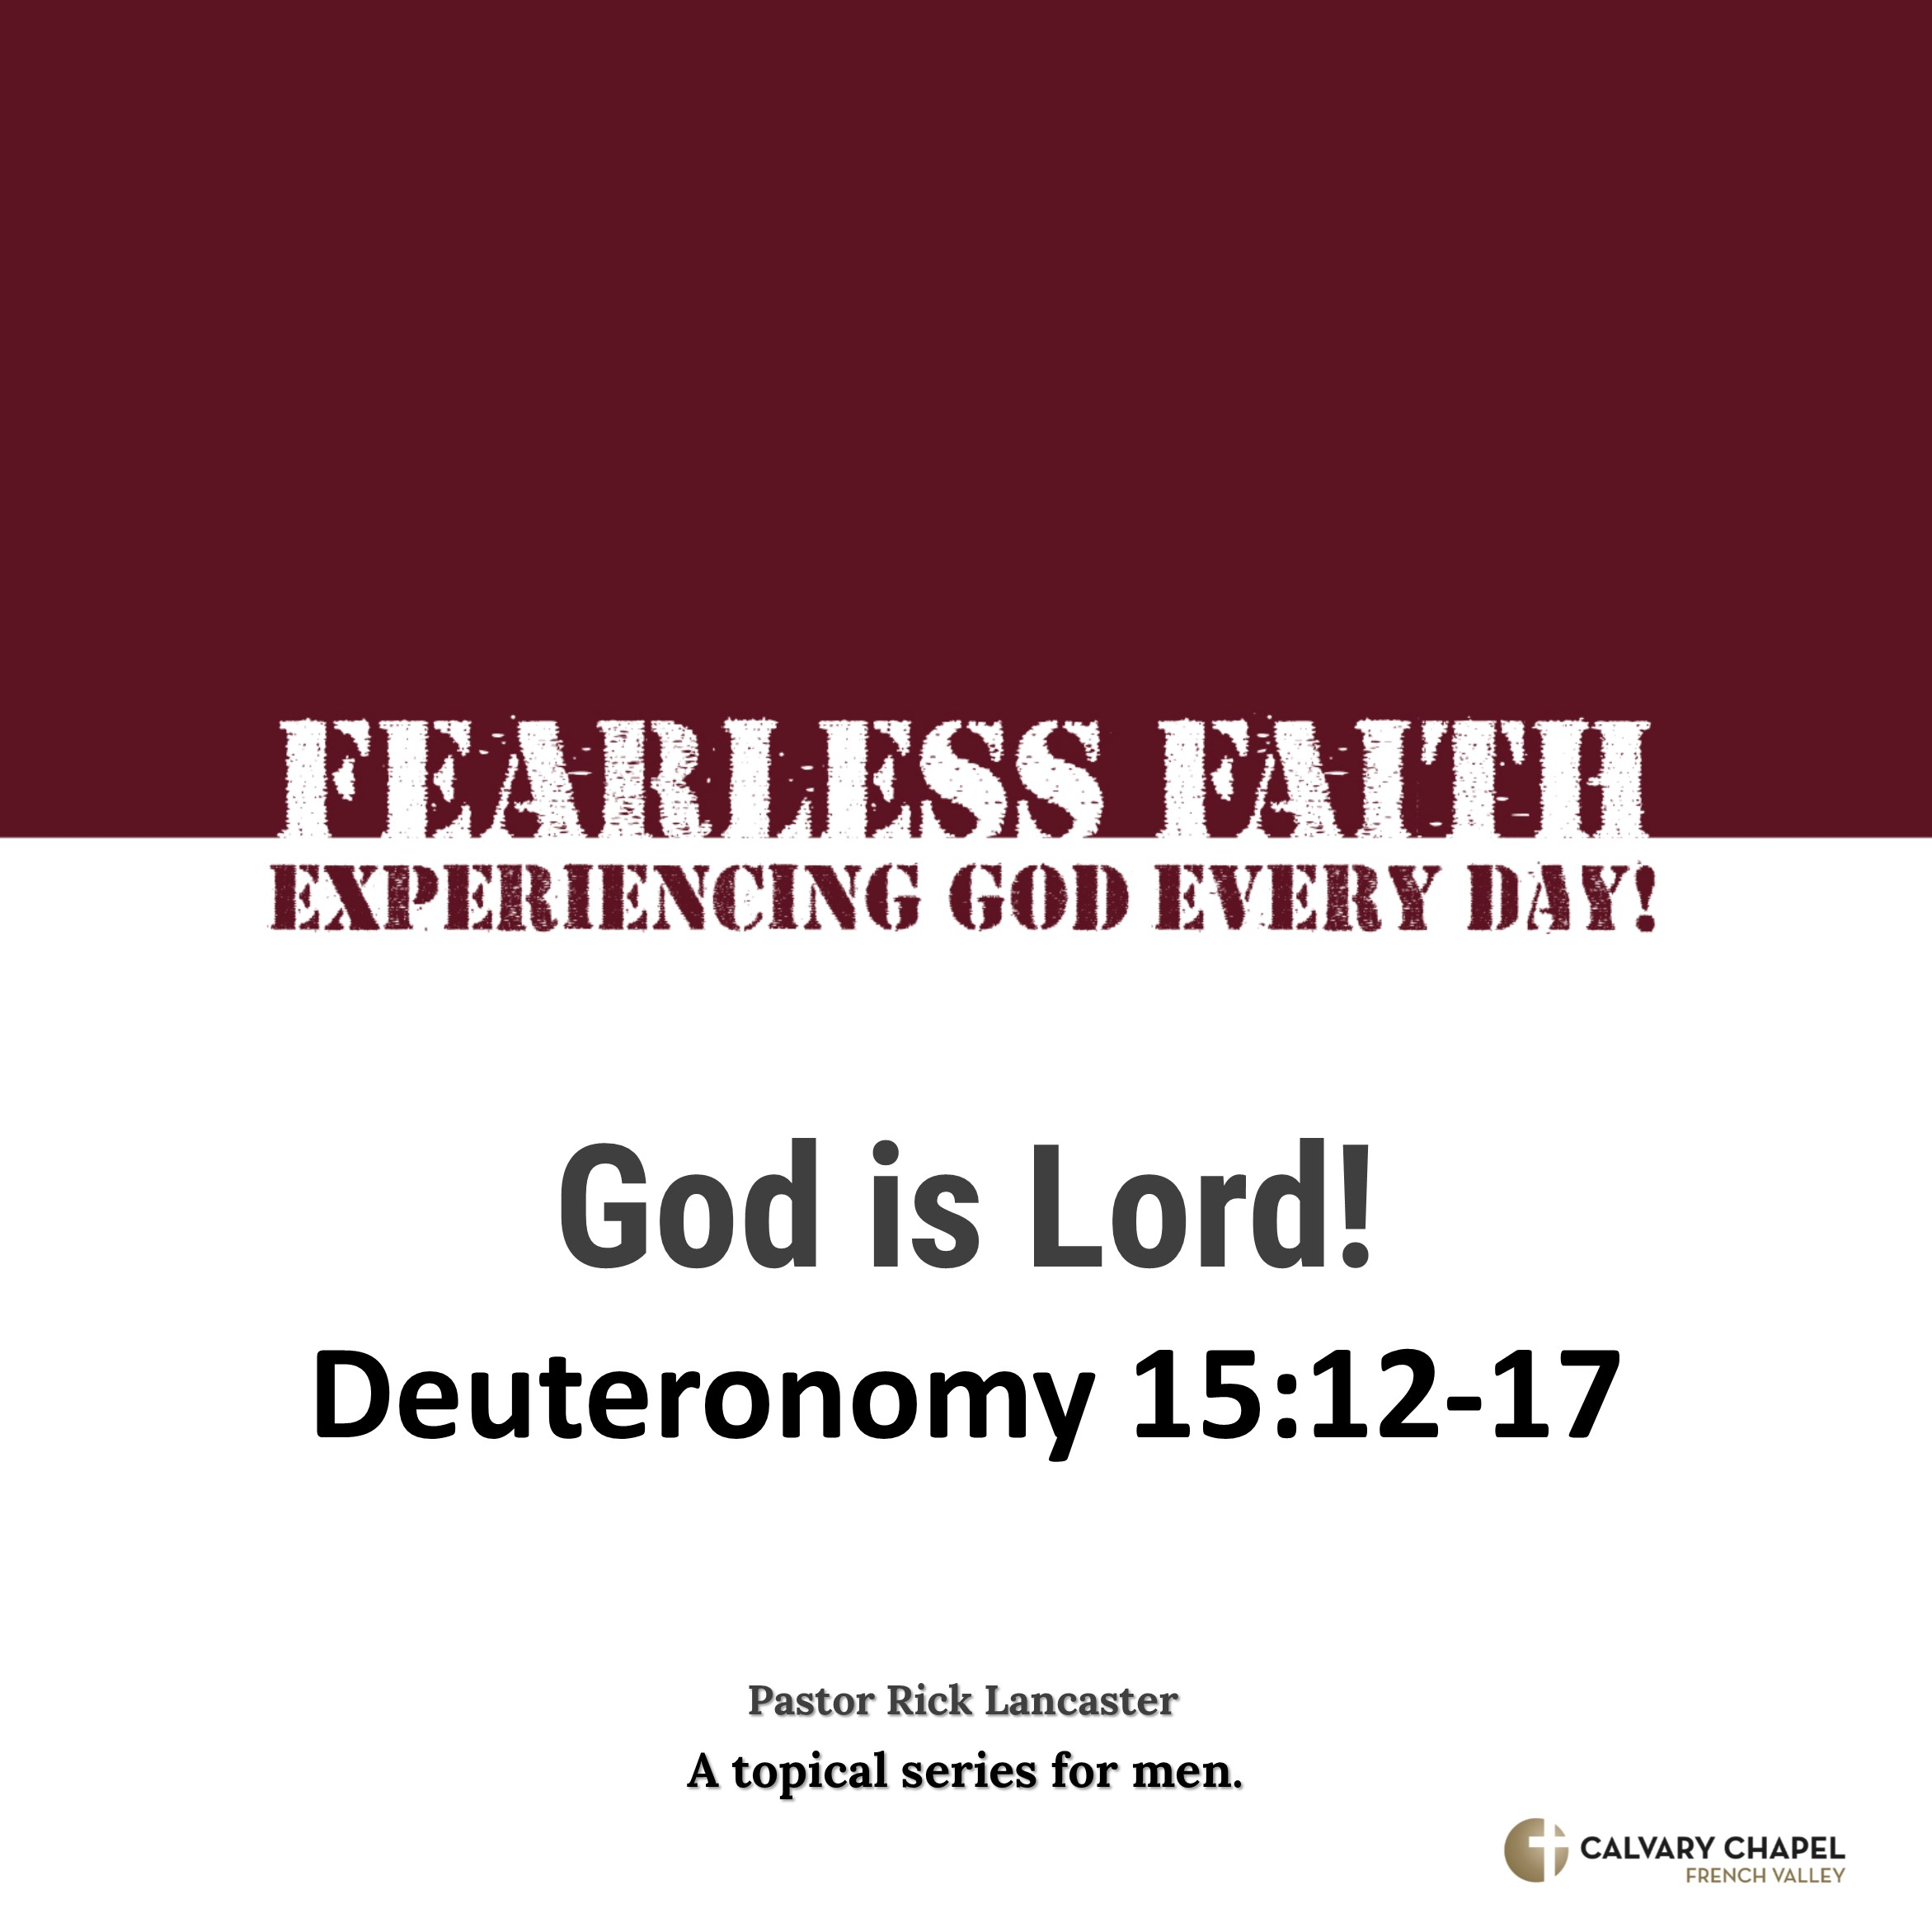 God is Lord! – Deuteronomy 15:12-17 Image